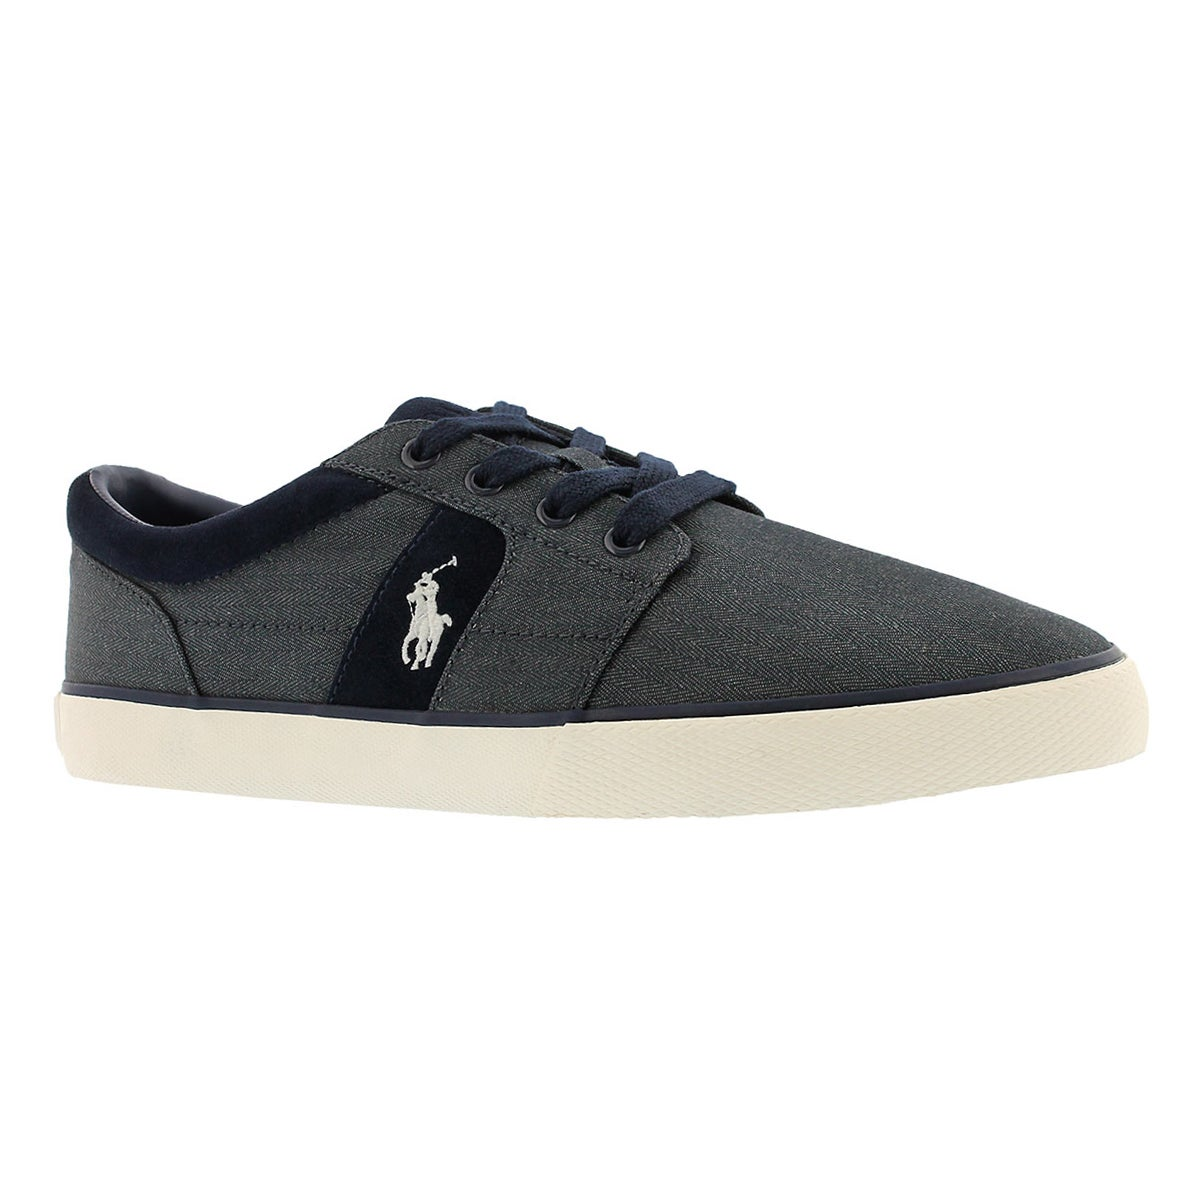 Men's HALMORE II denim lace up sneakers